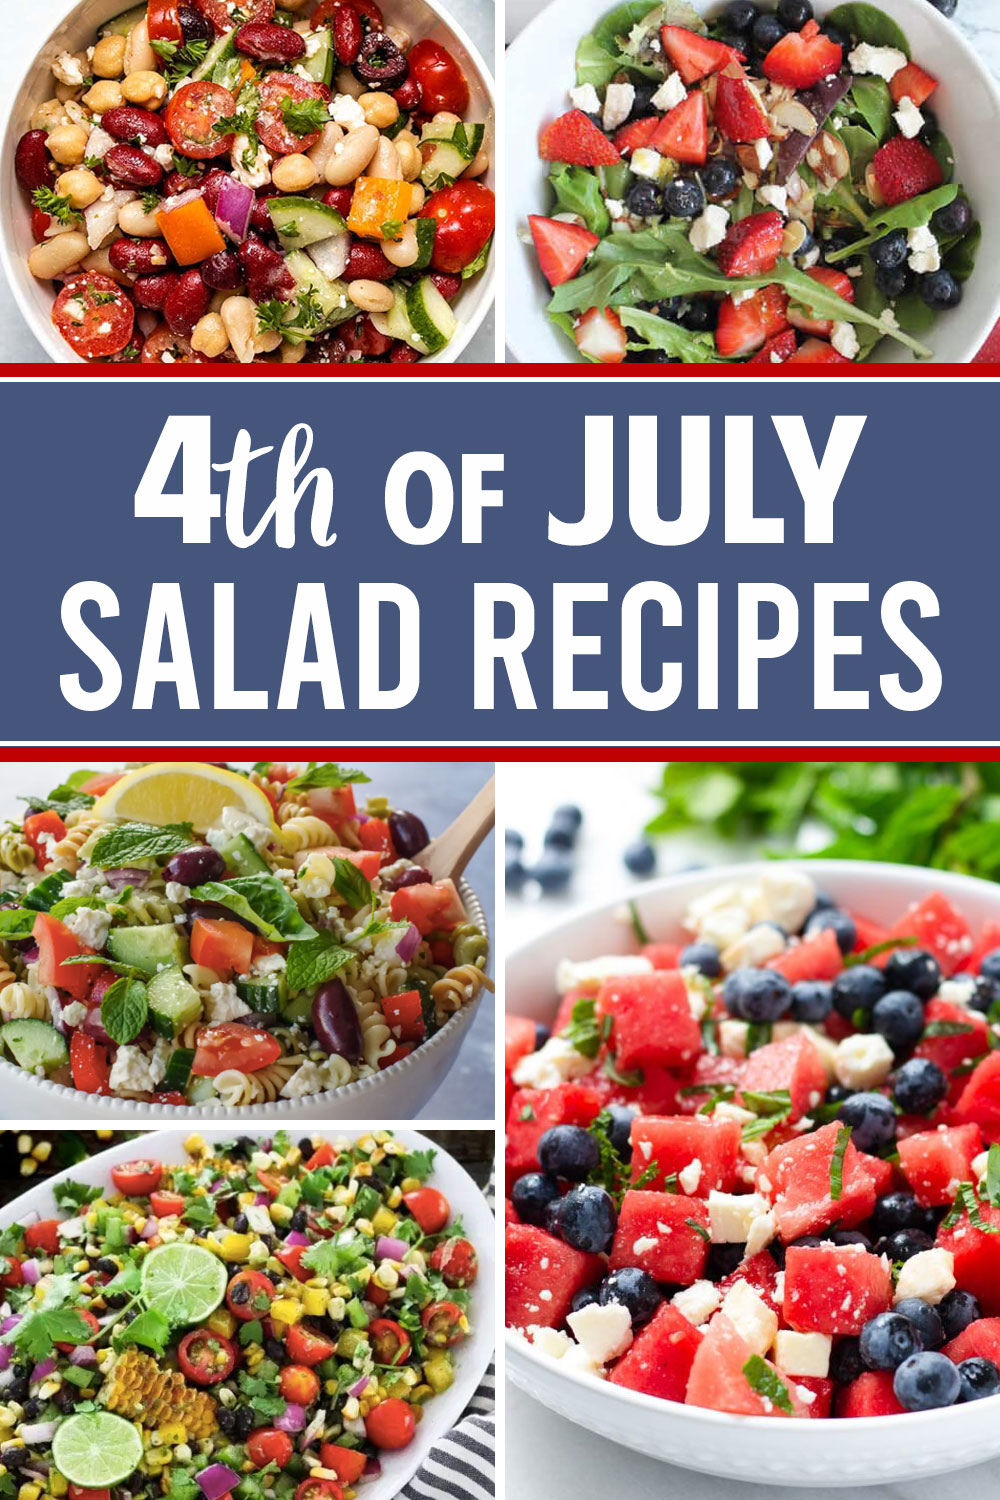 20 delicious salad recipes perfect for 4th of July.